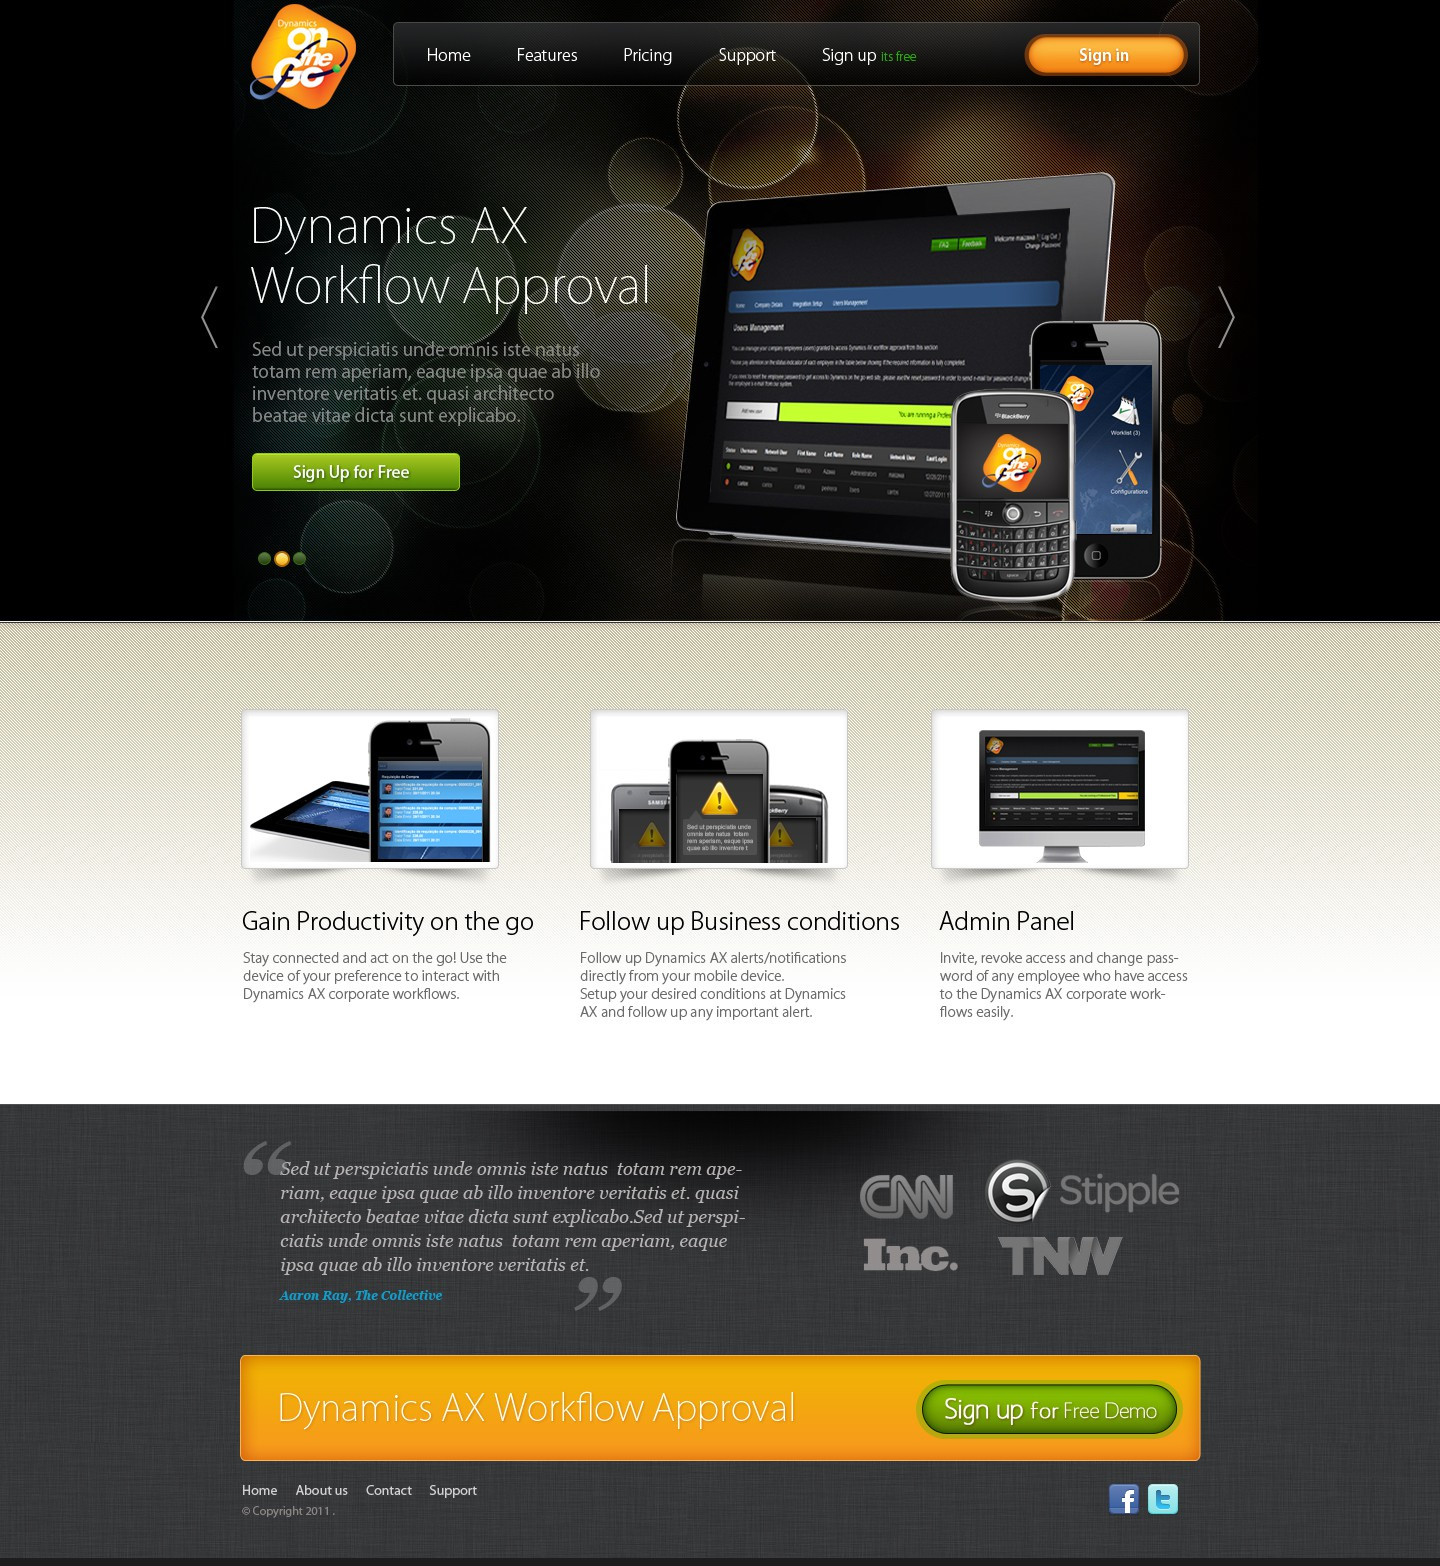 Dynamics On The Go needs a new website design for new Services Promotion